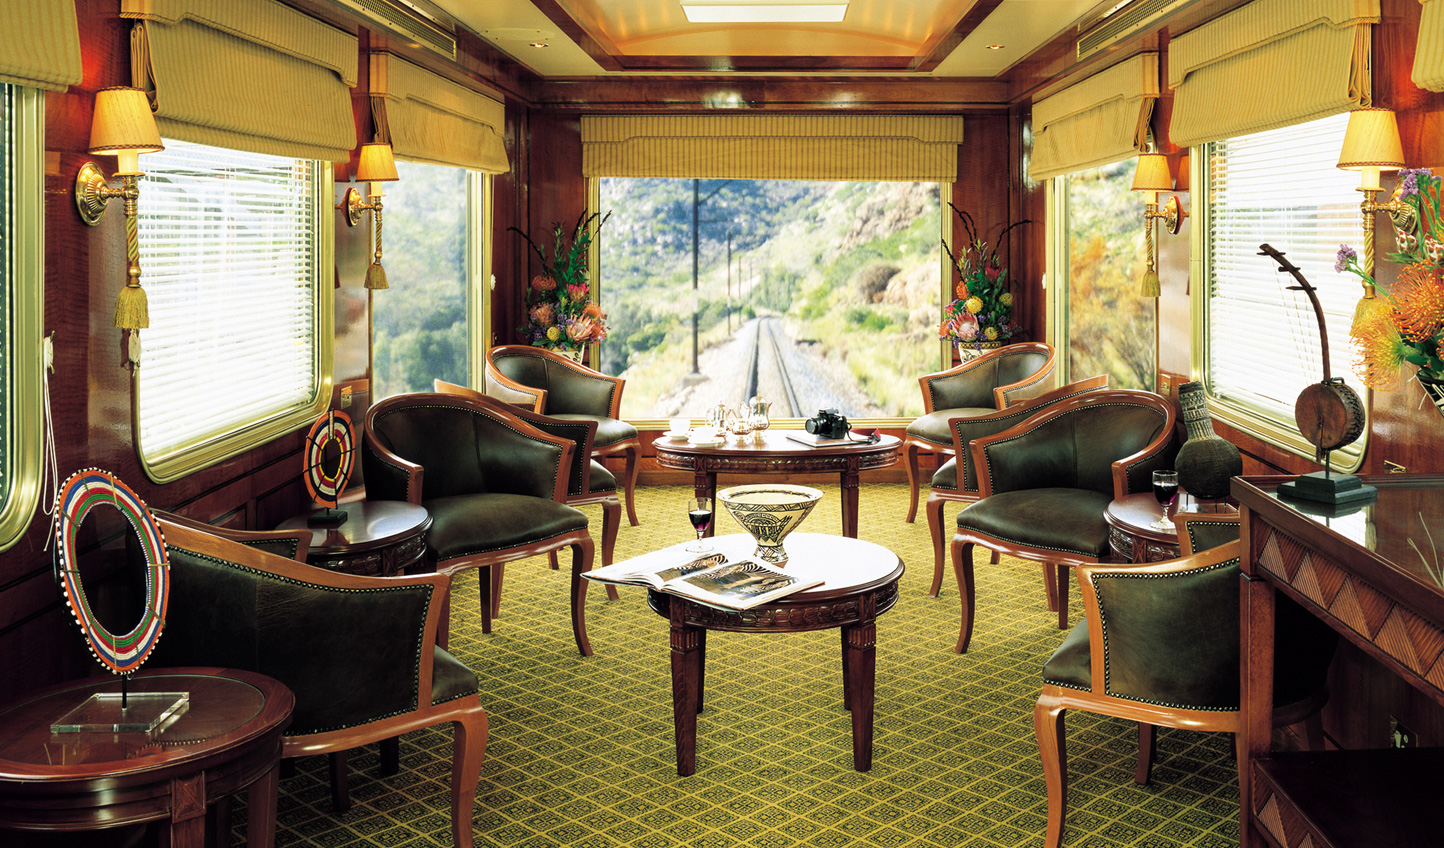 Sit back and watch the scenery roll by in the Observation Car